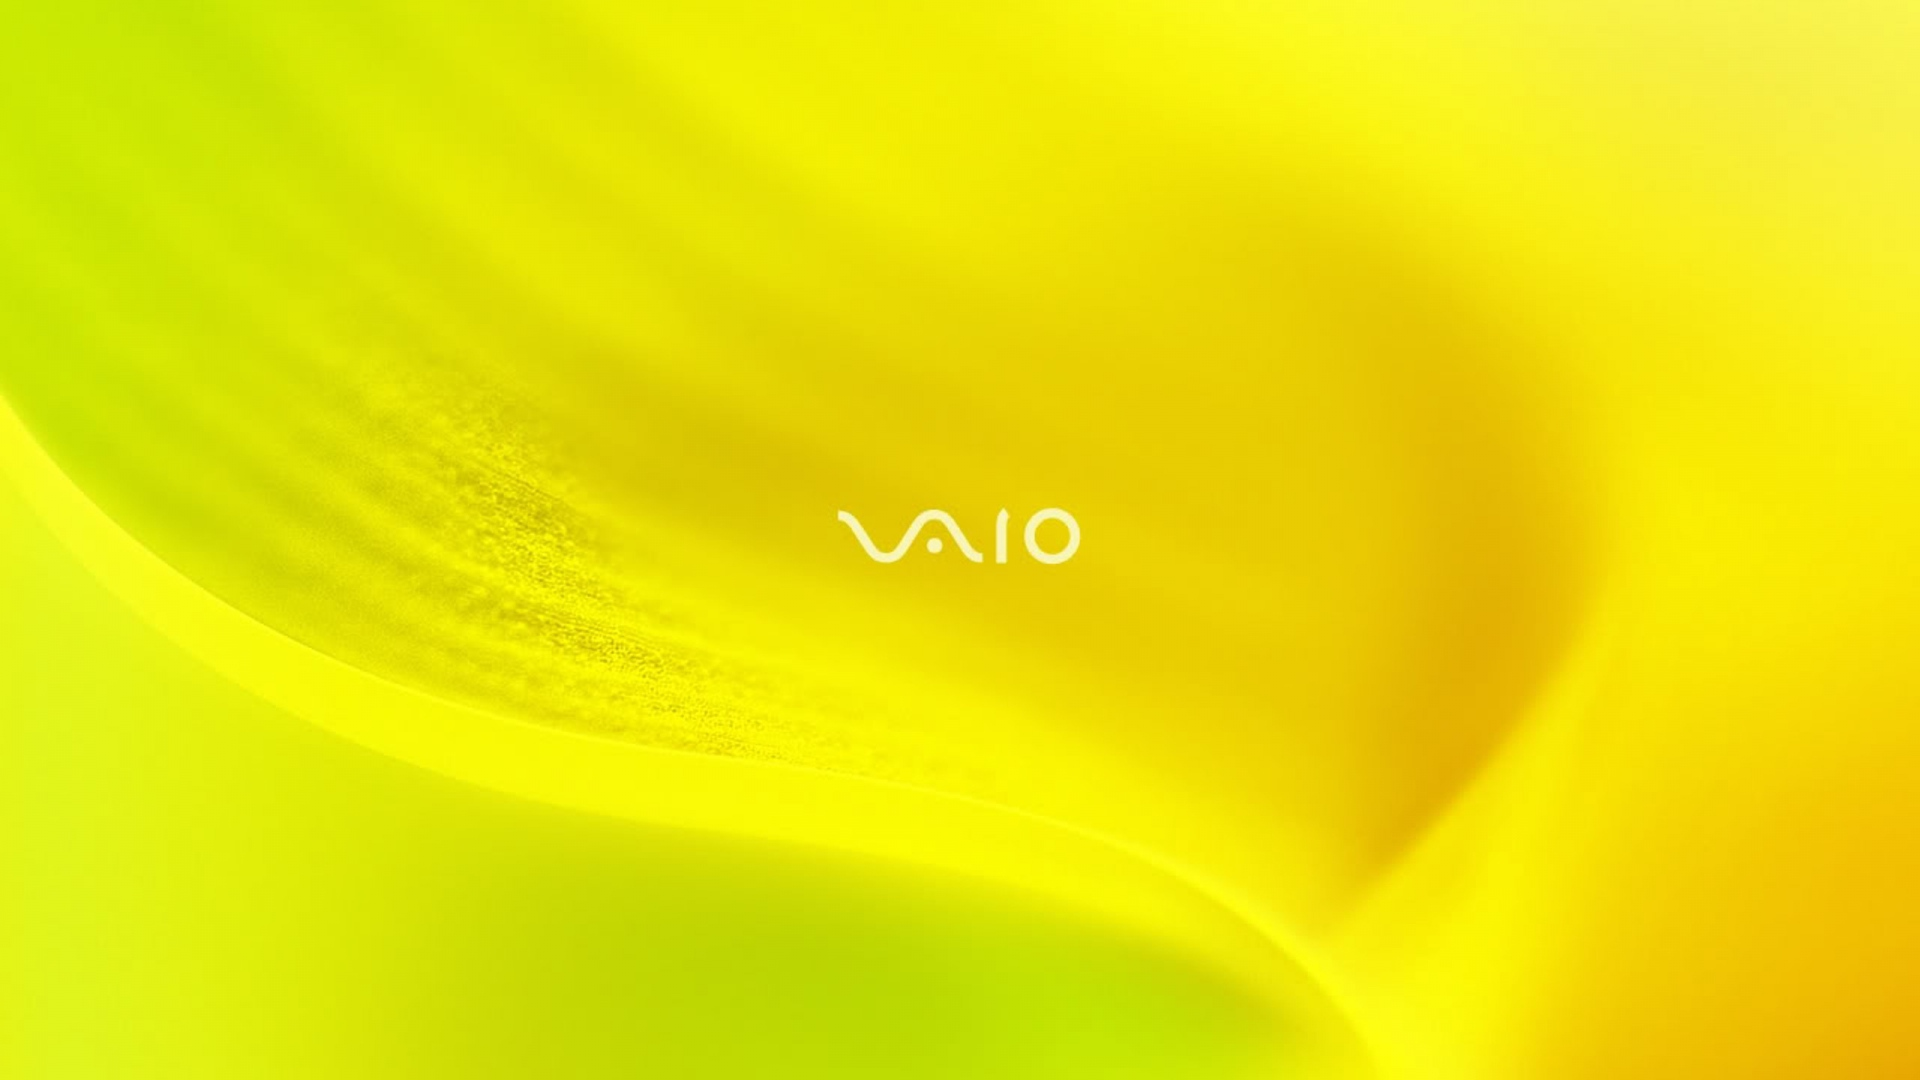 Hd wallpaper vivo - Wallpaper 1920x1080 Sony Vaio Yellow System Line Full Hd 1080p